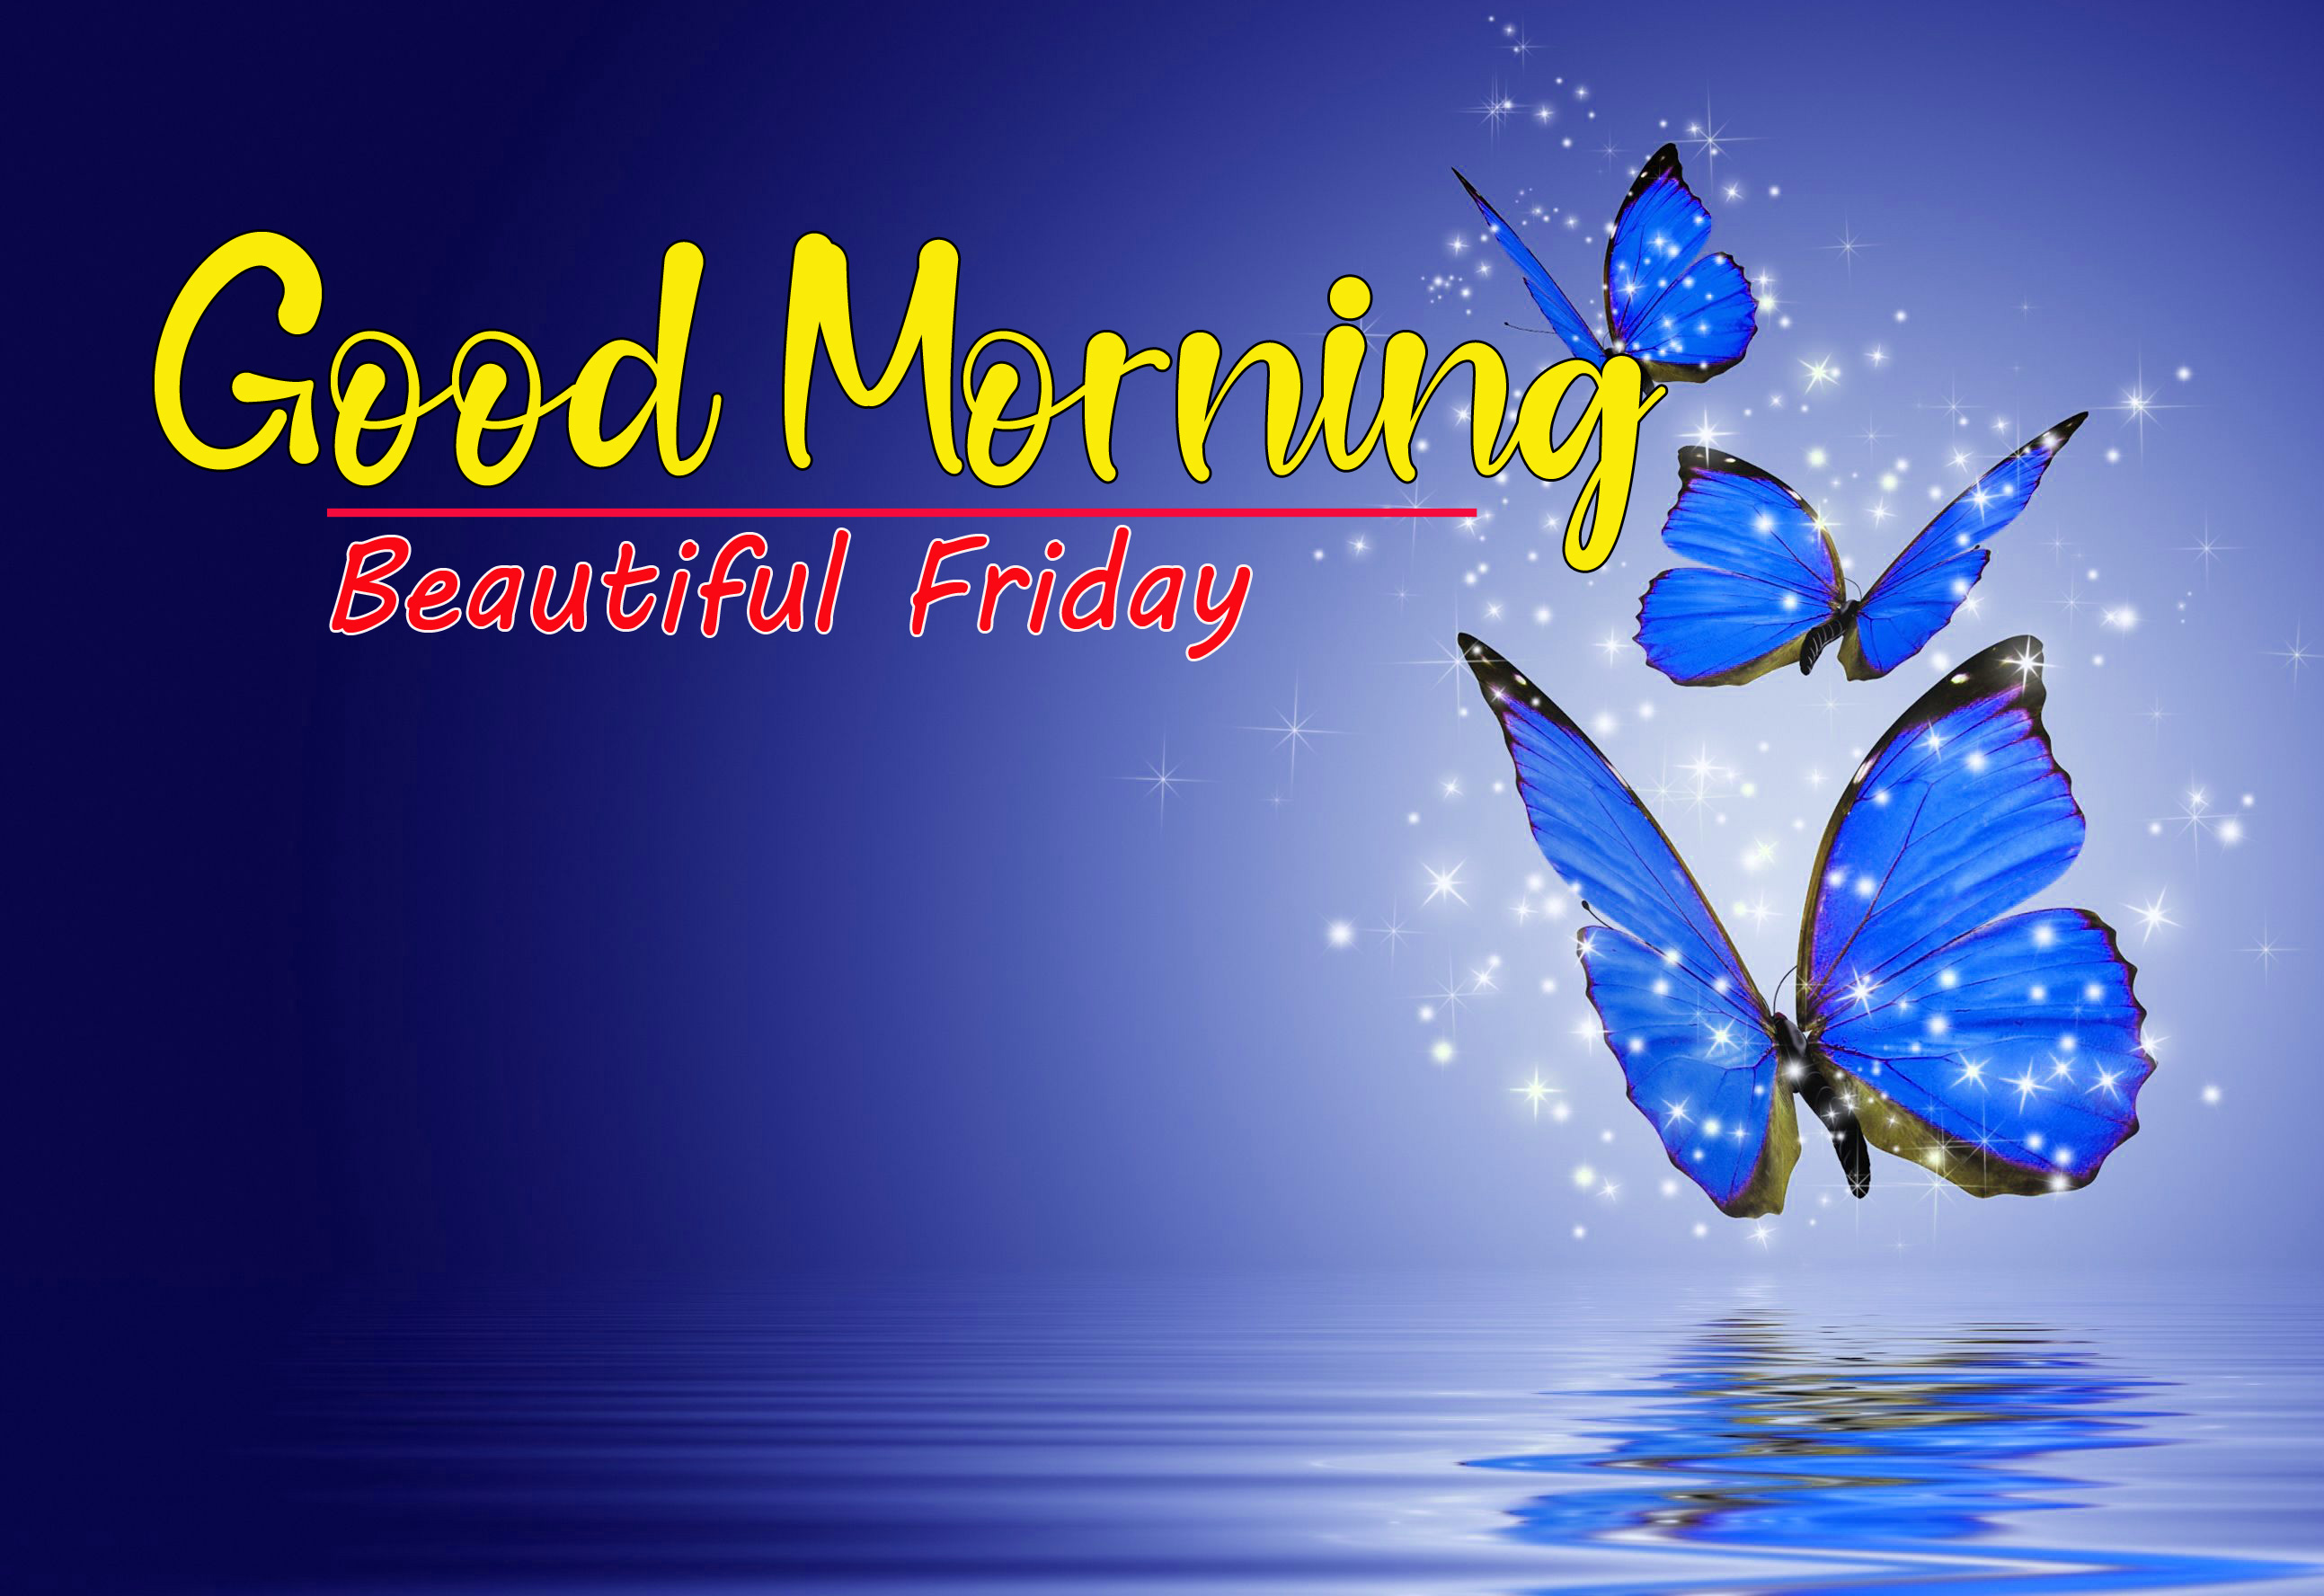 Friday Good Morning Images 1